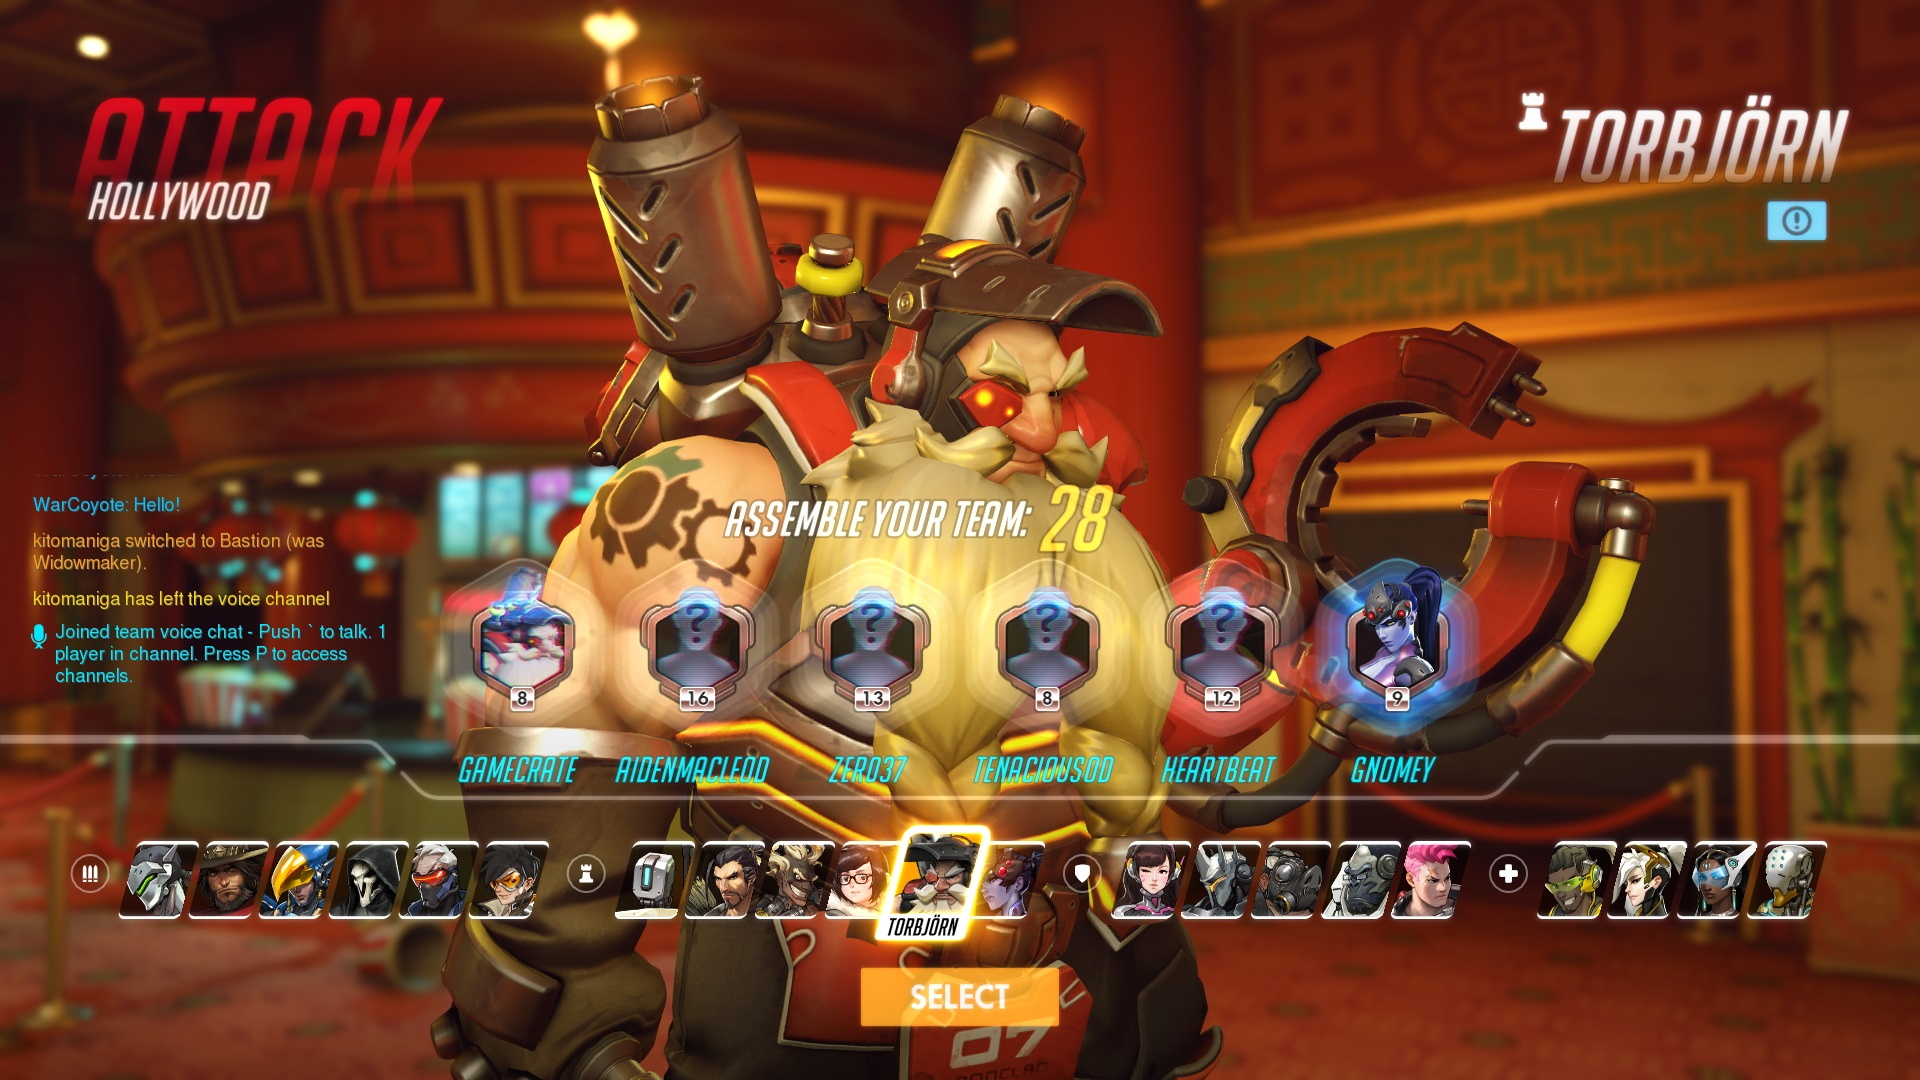 why Torbjörn and Widowmaker on ATTACK? // source: gamecrate.com